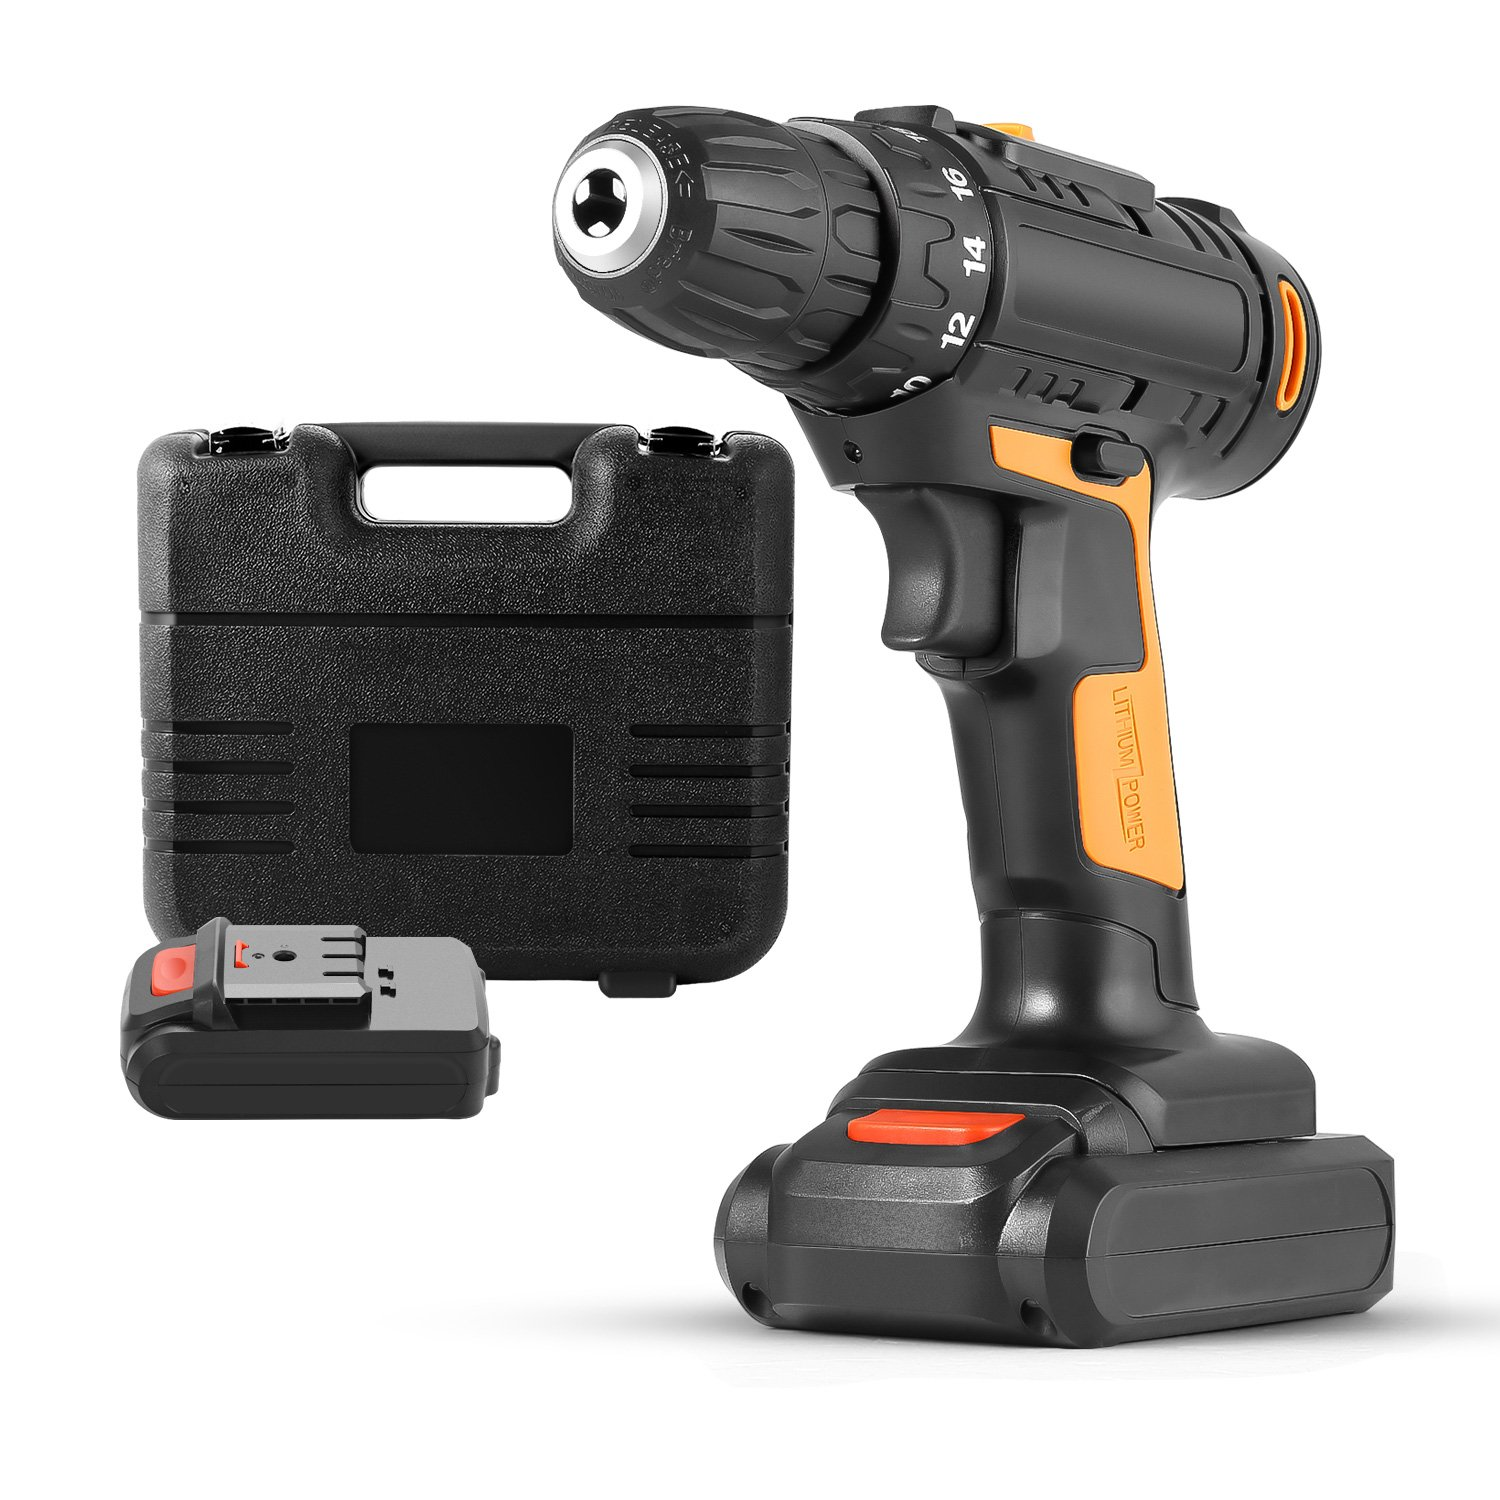 Schafter 21V Double Speed 2 In 1 Cordless Lithium-Ion Compact Drill Driver Kit